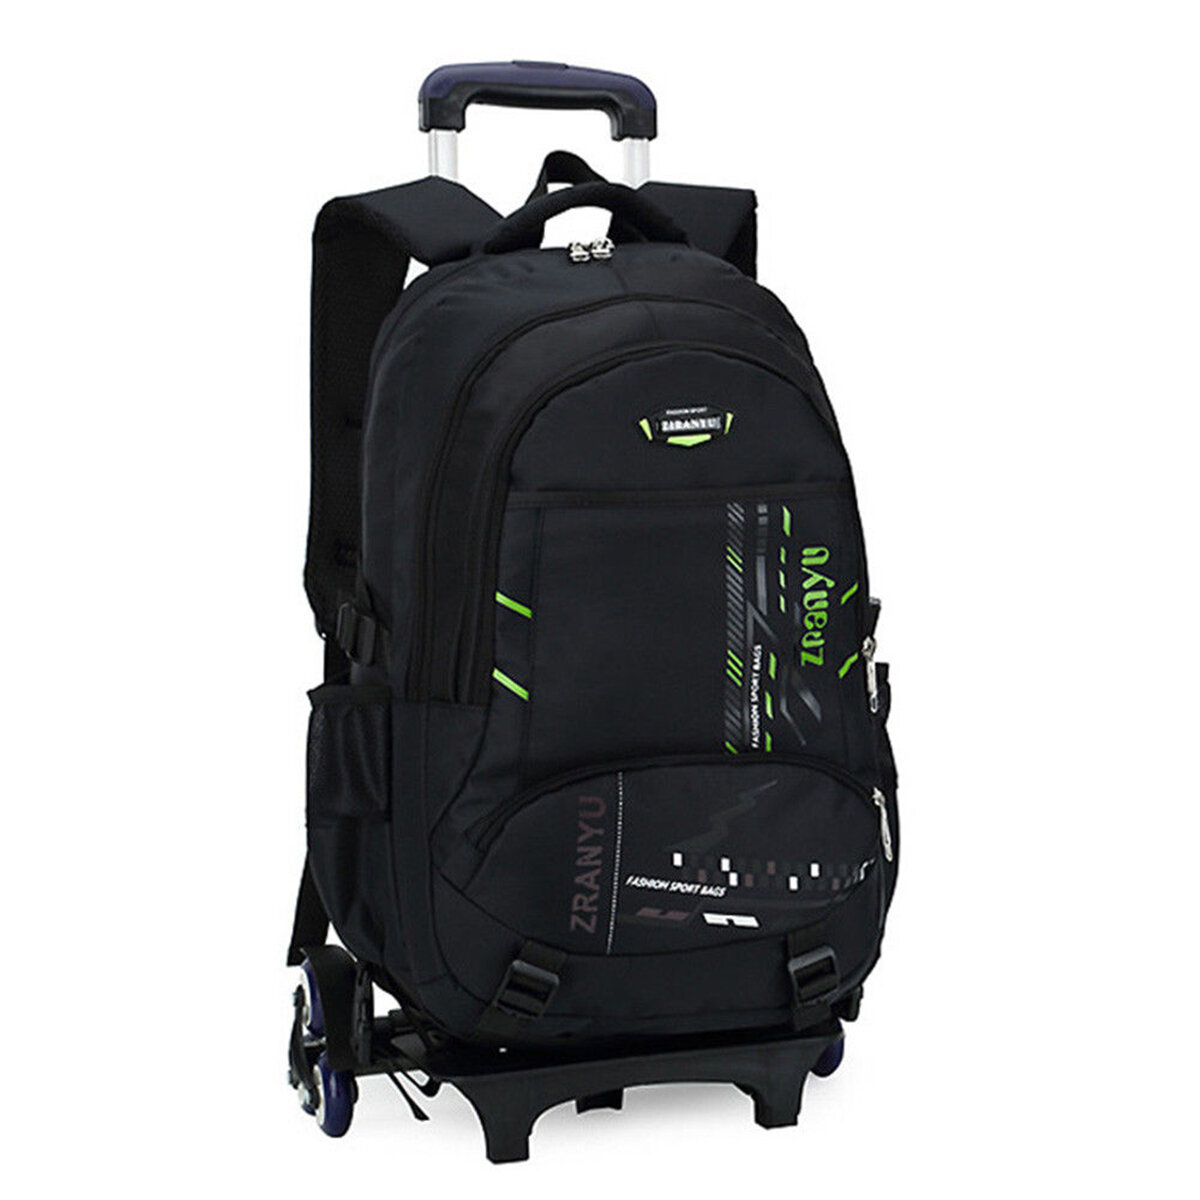 Travel Rucksack 36l Children Kids Trolley Backpack Camping Travel Rucksack School Luggage Bag With Wheels